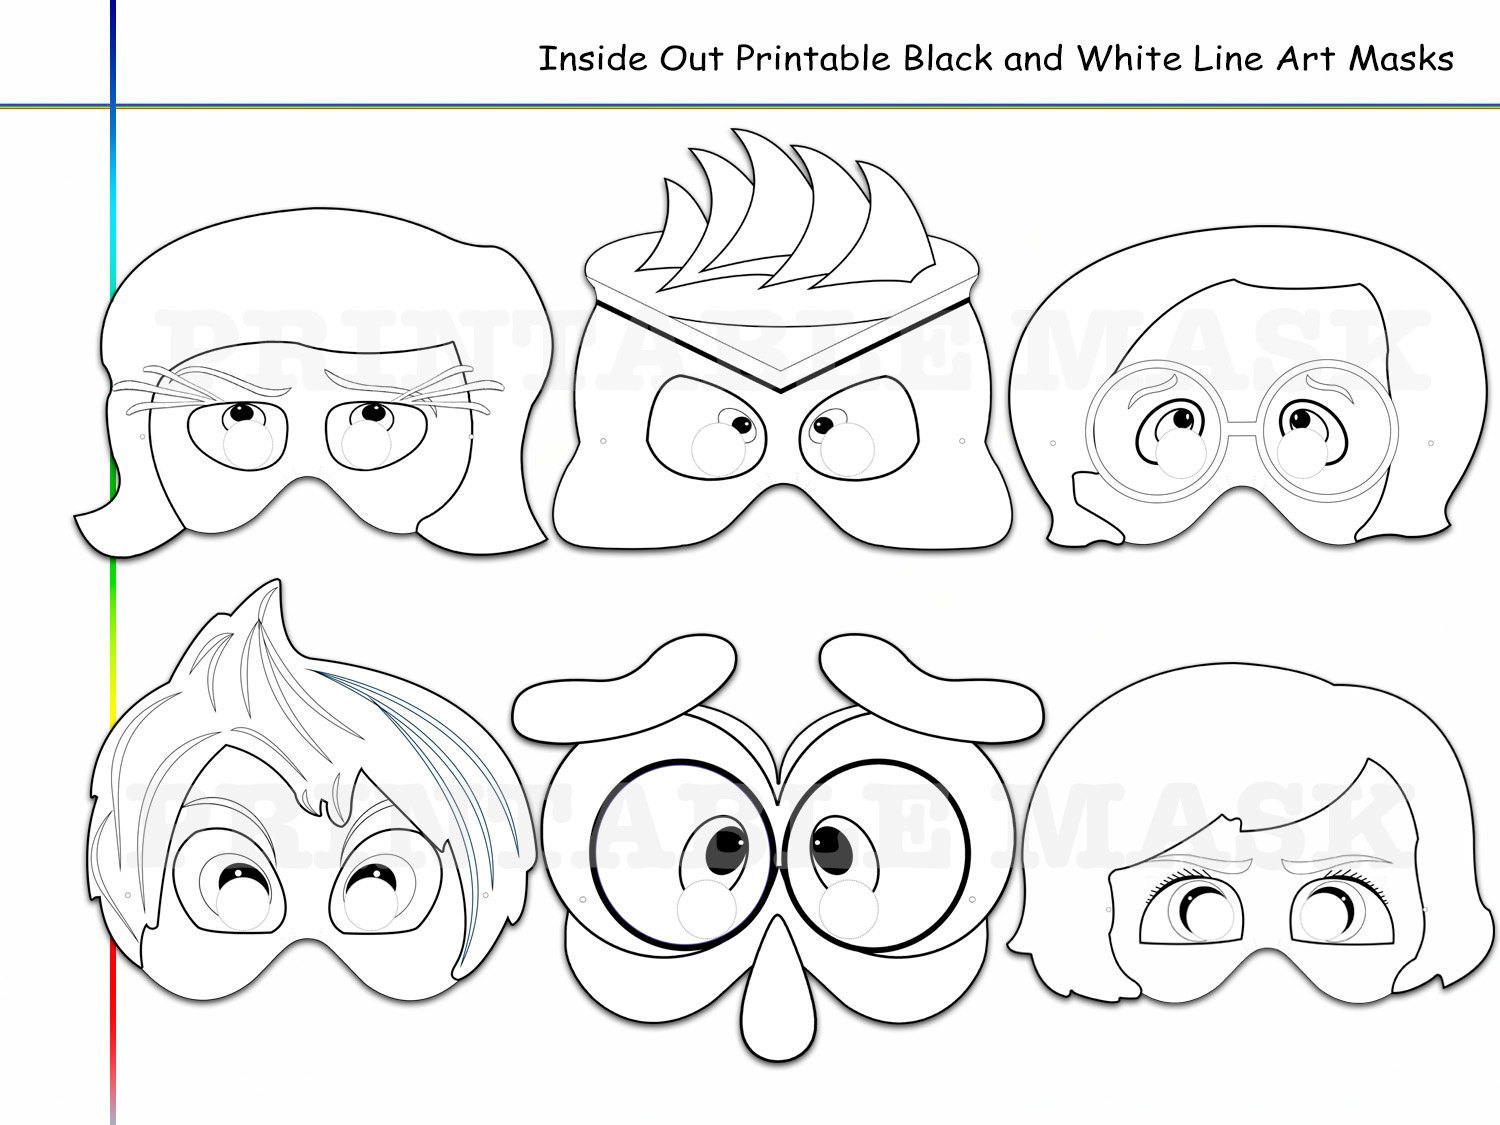 Coloring Pages Inside Out Printable Black By